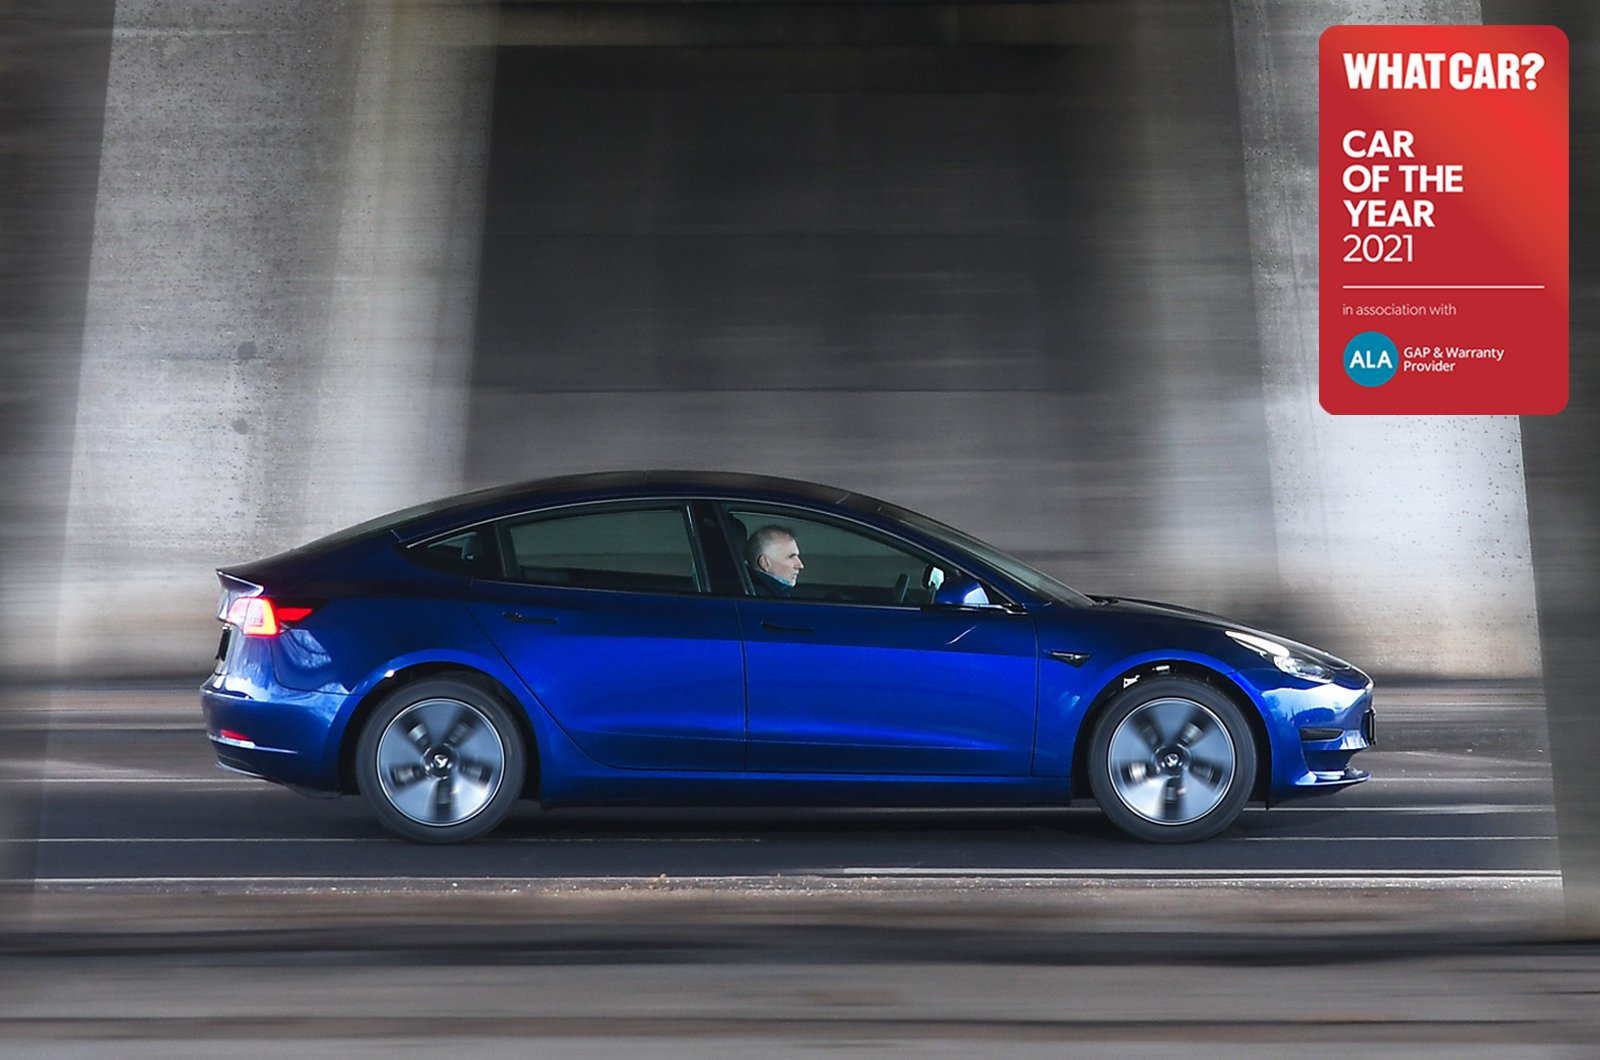 Large Electric Car of the Year - Tesla Model 3